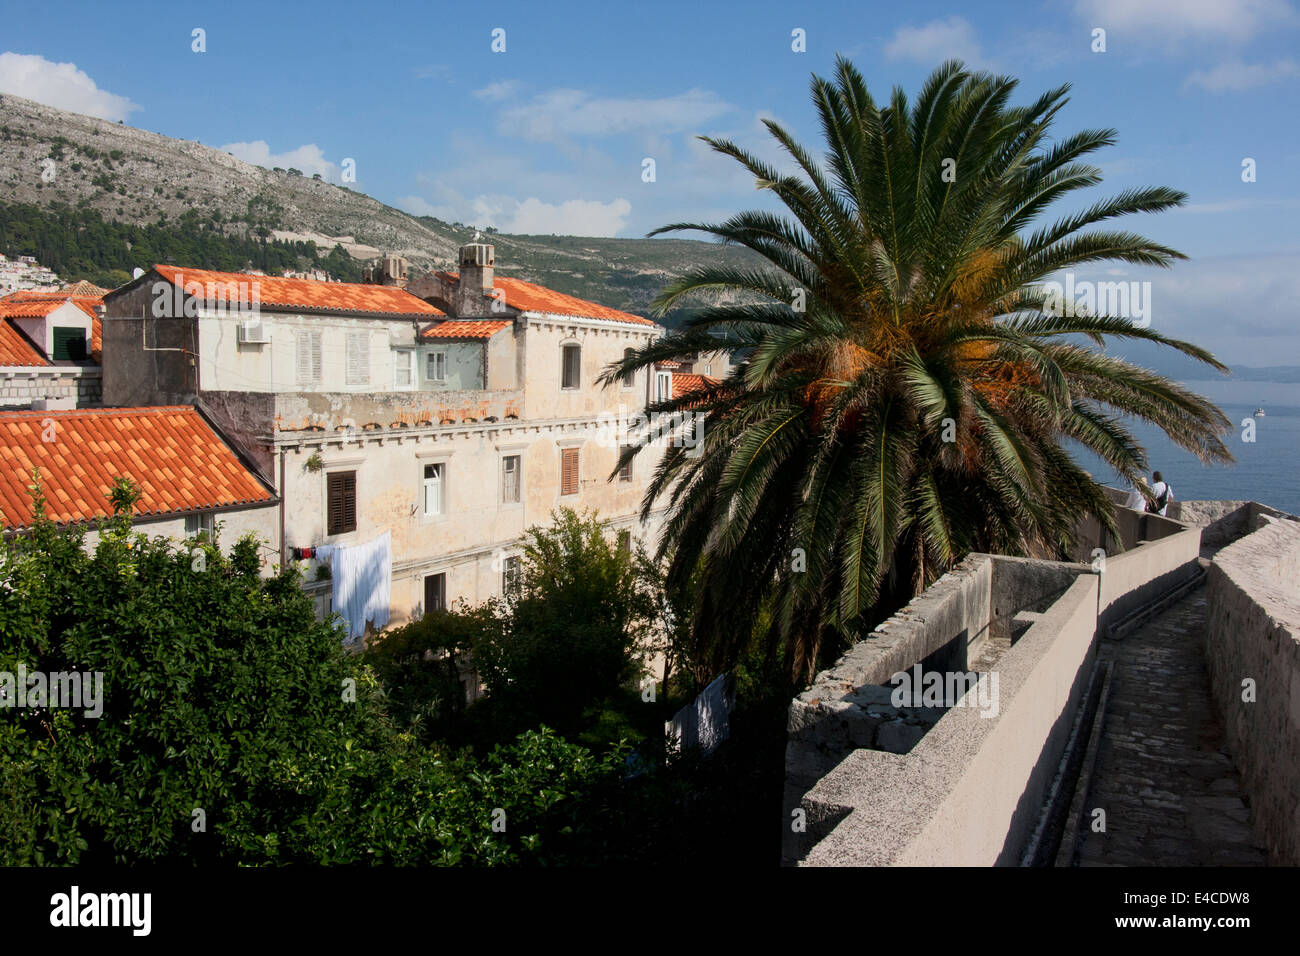 View from top of old city wall, Dubrovnik, Croatia Stock Photo